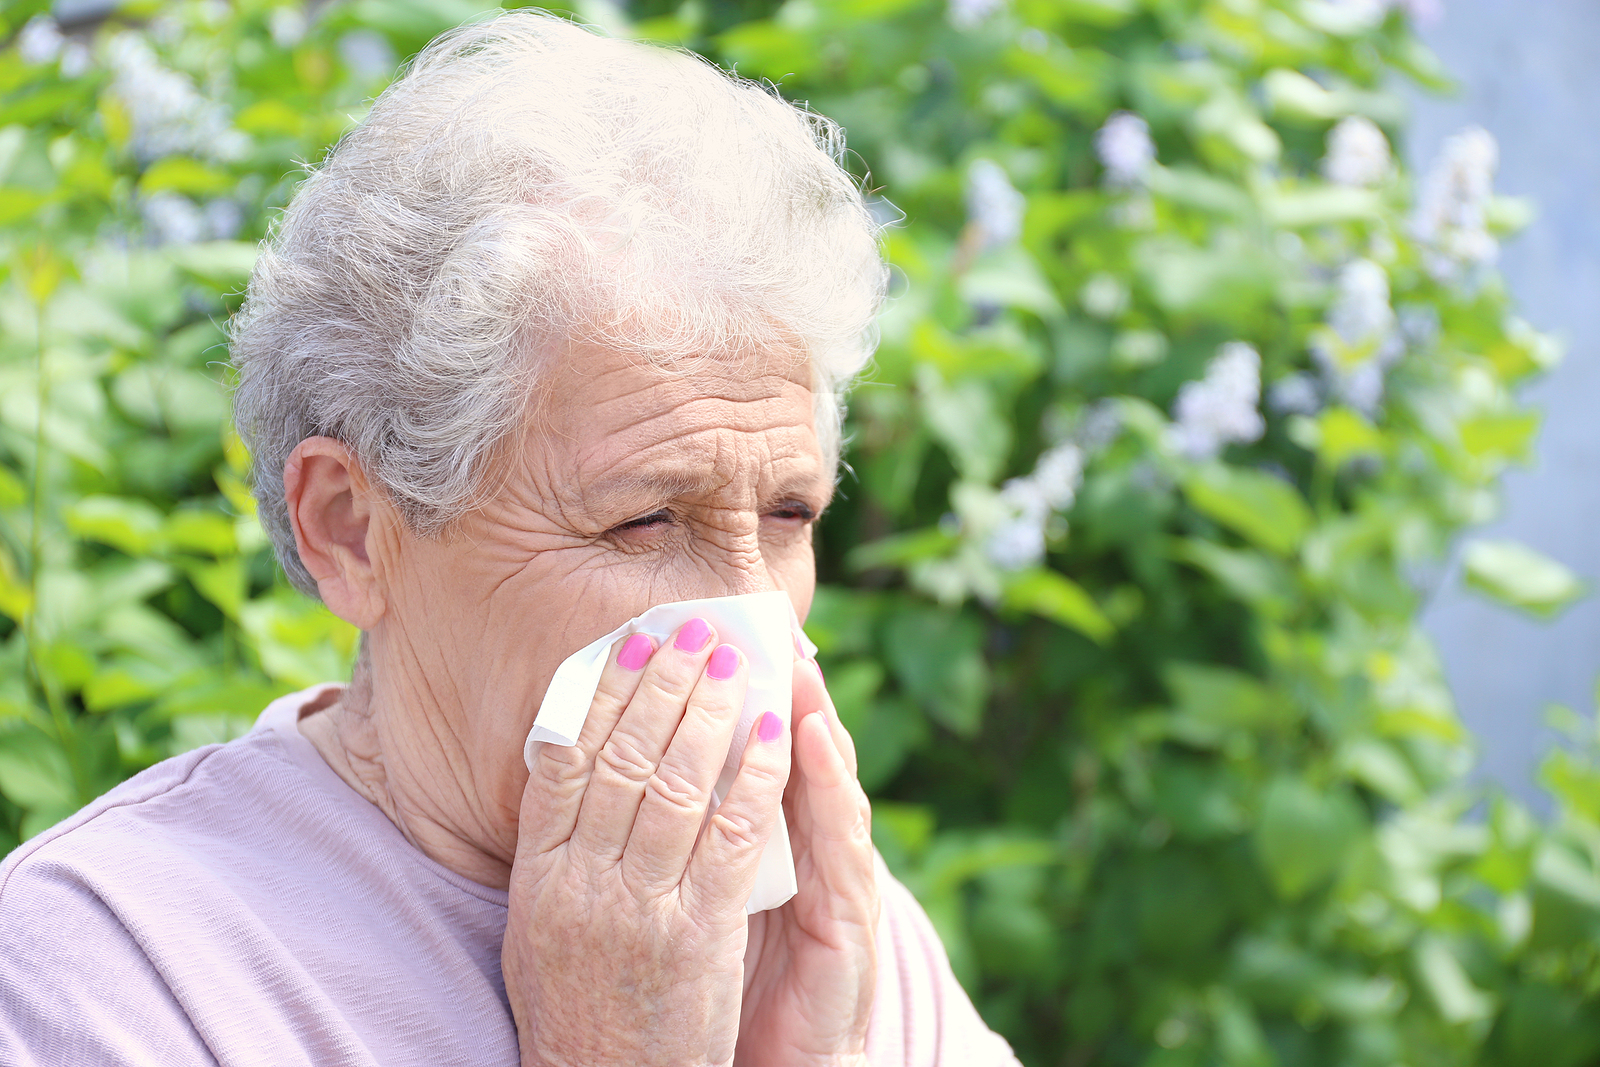 Senior woman uses a tissue to blow her nose for spring allergy relief